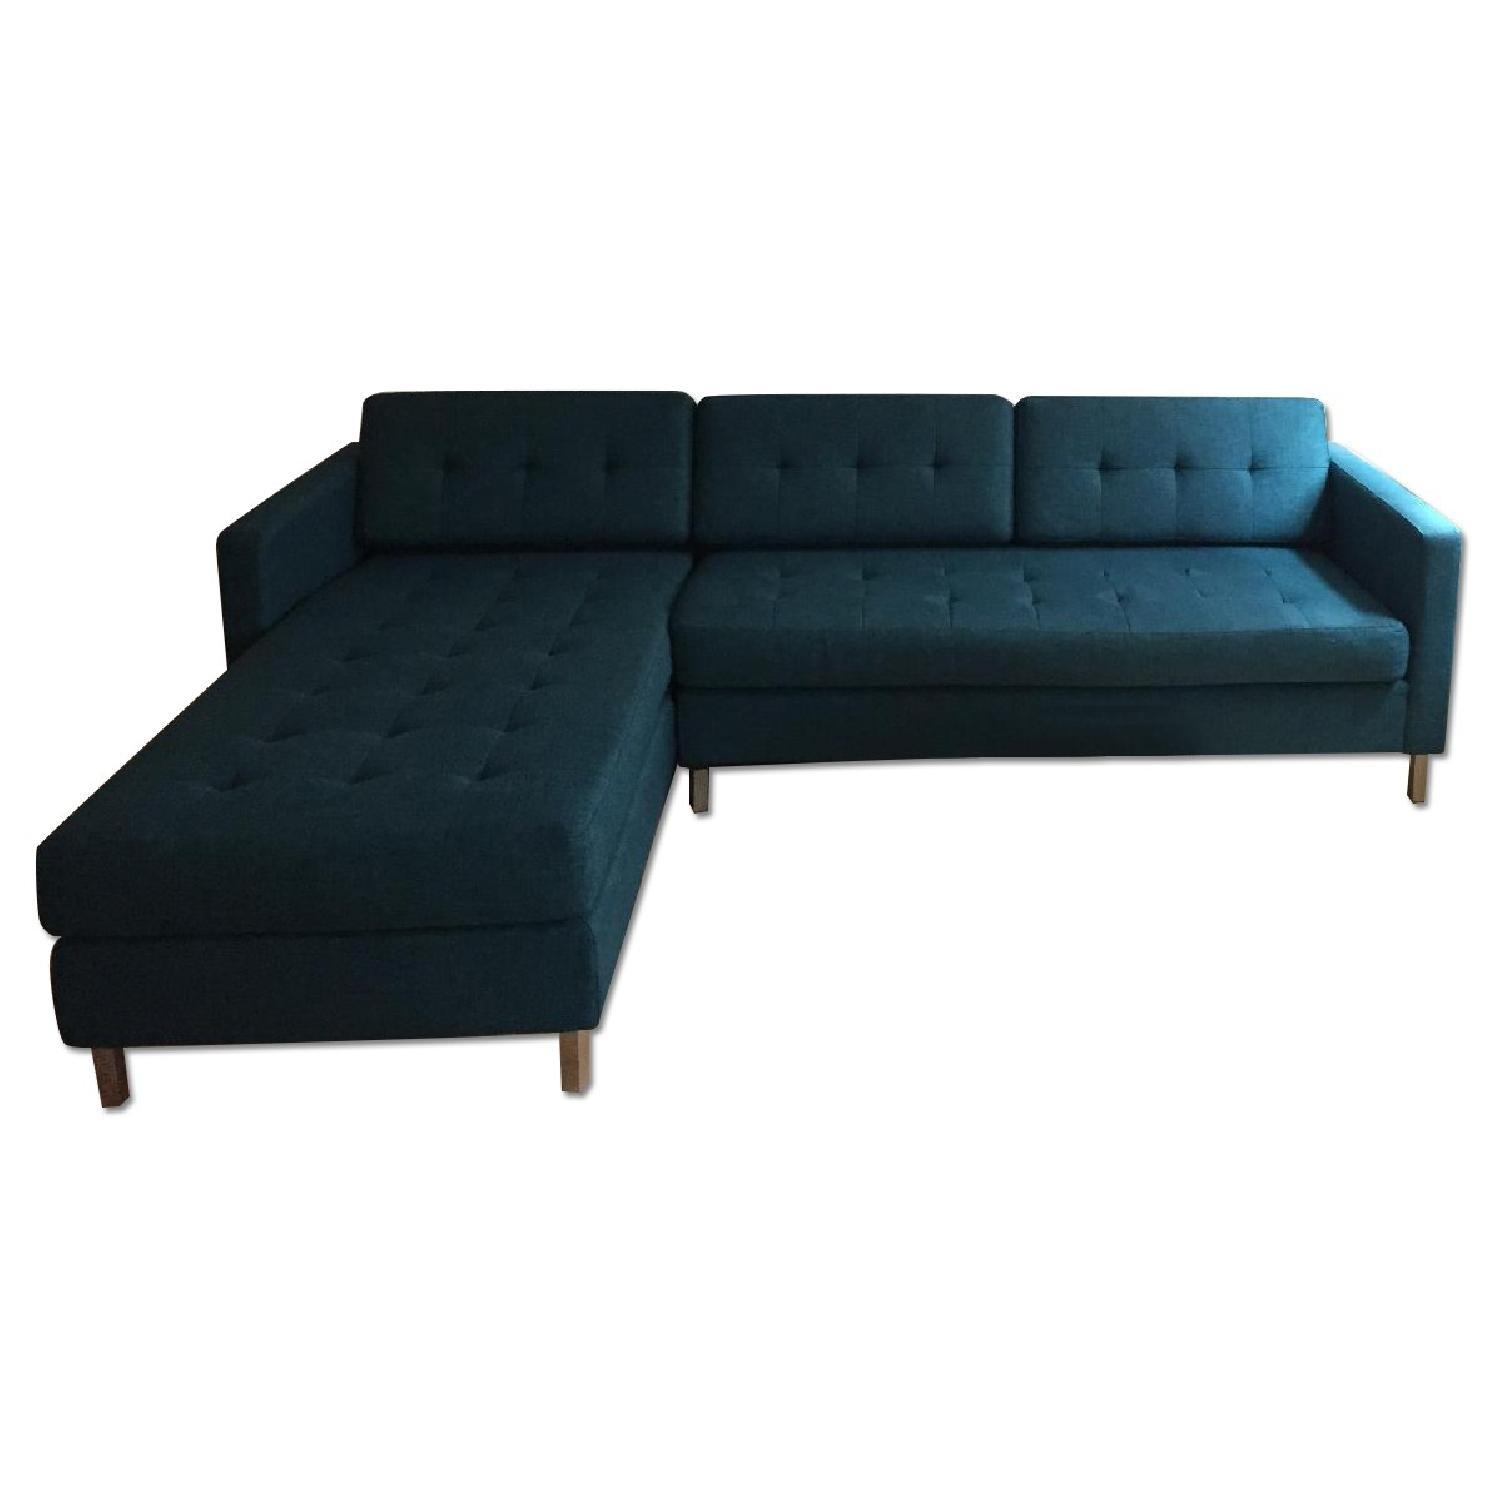 Furniture: West Elm Paige Sofa | West Elm Henry Sectional Reviews Pertaining To West Elm Sectional Sofa (Image 11 of 20)